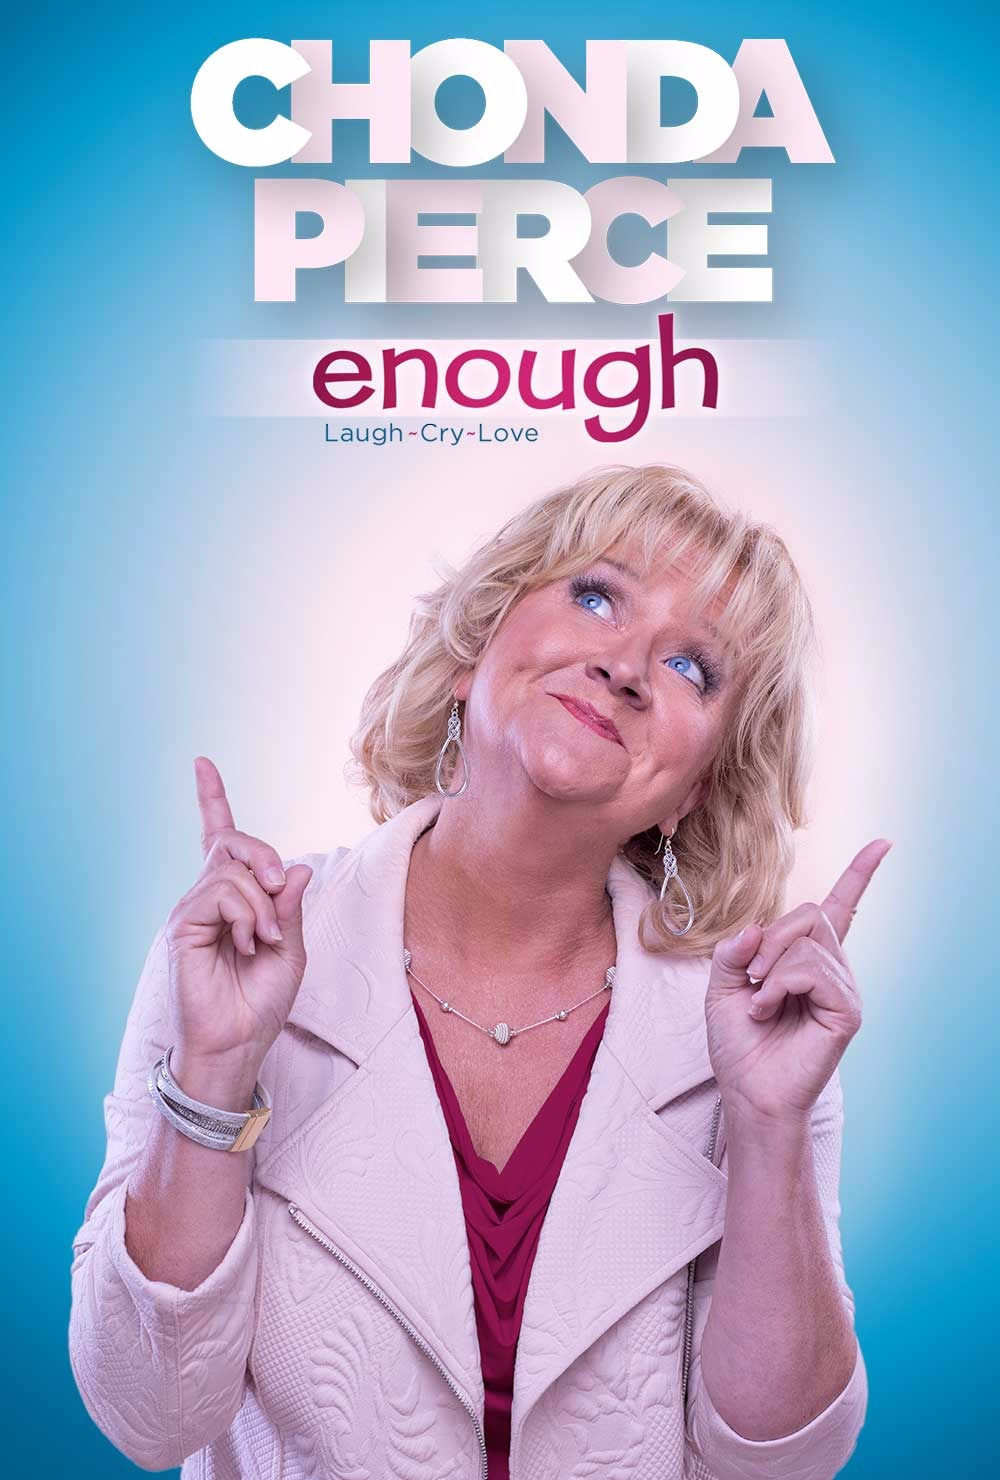 Chonda Pierce on Enough: Friends and Faith Through the Hardest Days